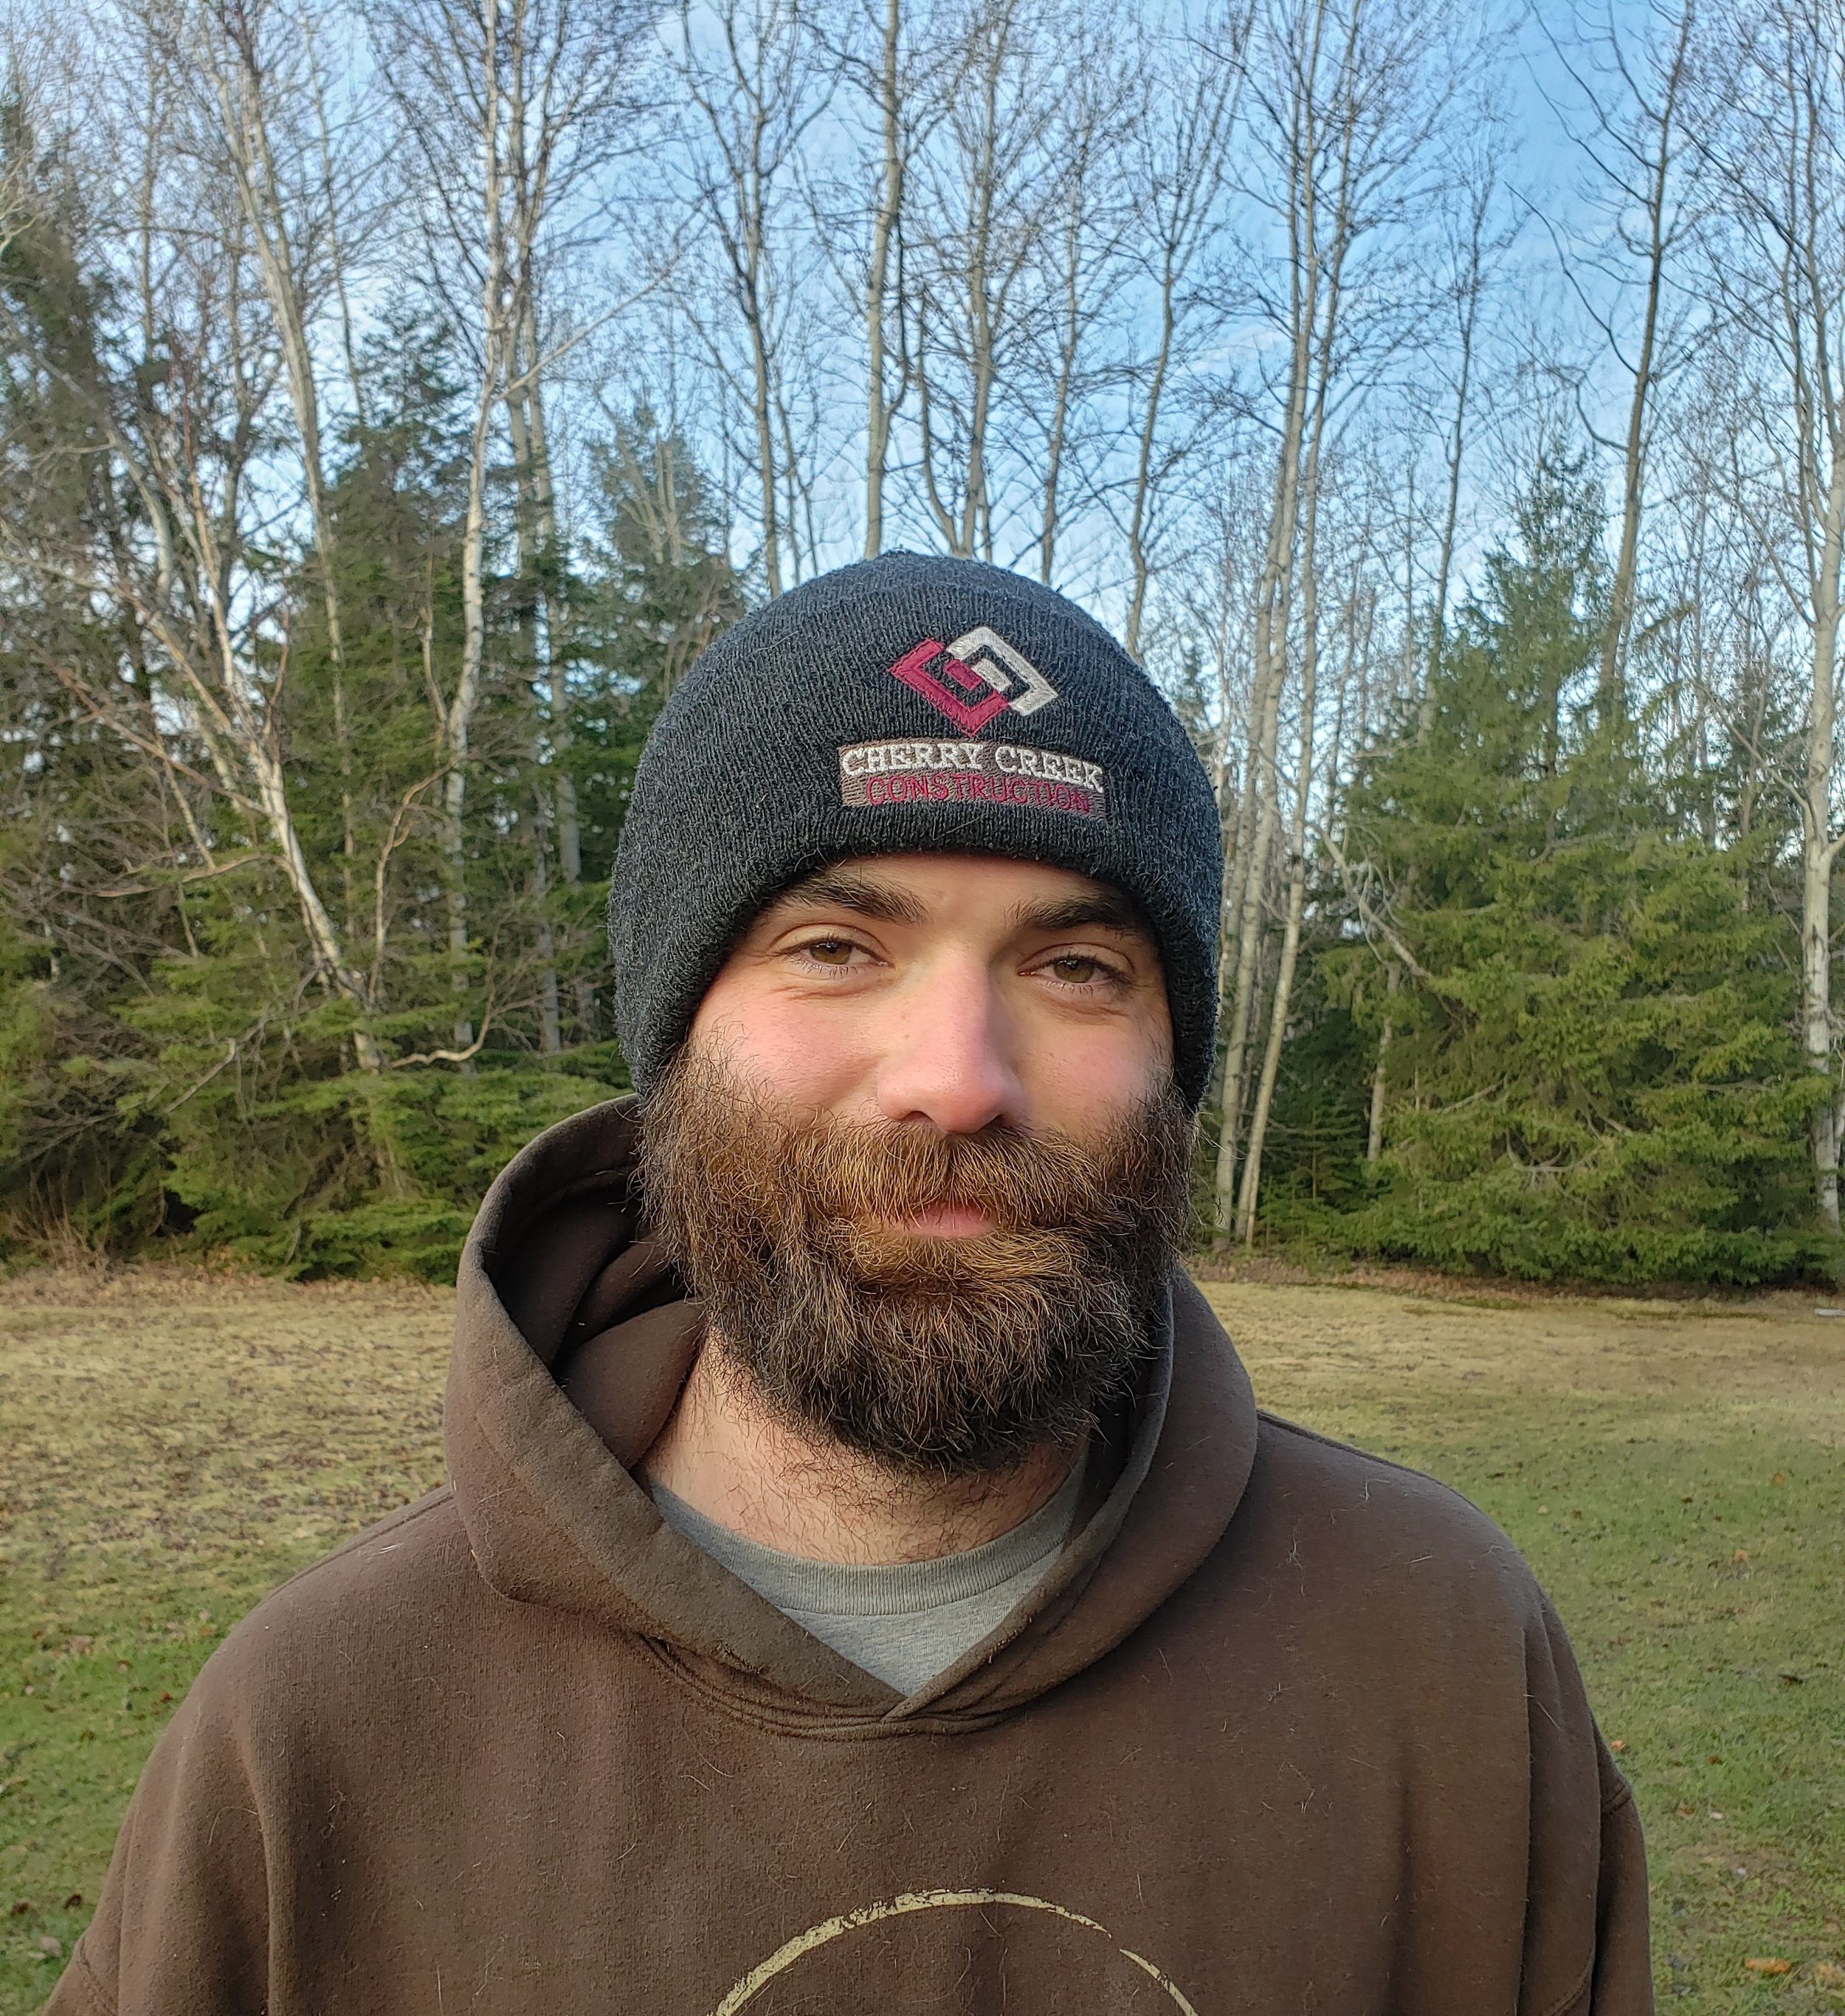 Pat Althouse - Pat, carpenter, believes that there is no job too tough for him to handle. After work, he enjoys fishing and traipsing around the U.P. woods with his pack of domesticated foxes.